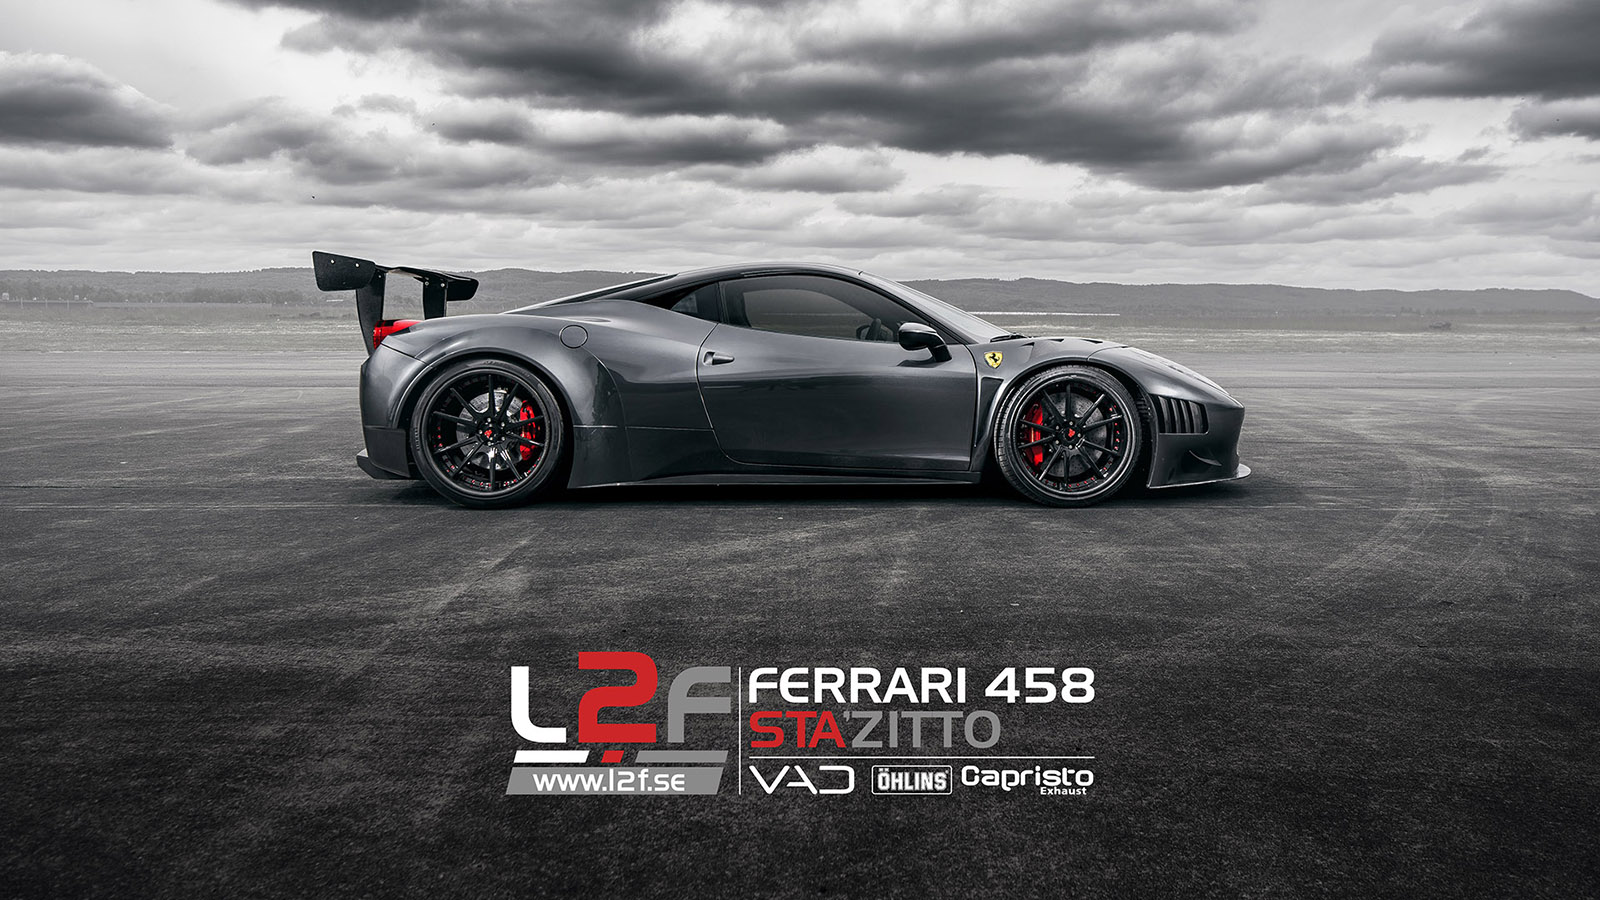 muscle car rc with Customized Ferrari 458 Gt3 3 on 1082409 bmws New Ad Slogan Is Designed For Driving Pleasure Video furthermore Chevrolet Graveyard 28 Virginia Us likewise Parma Raptor Body Gets Race Theme in addition 590193 further Porsche Electric Le Mans 2035 Prototype Side View.